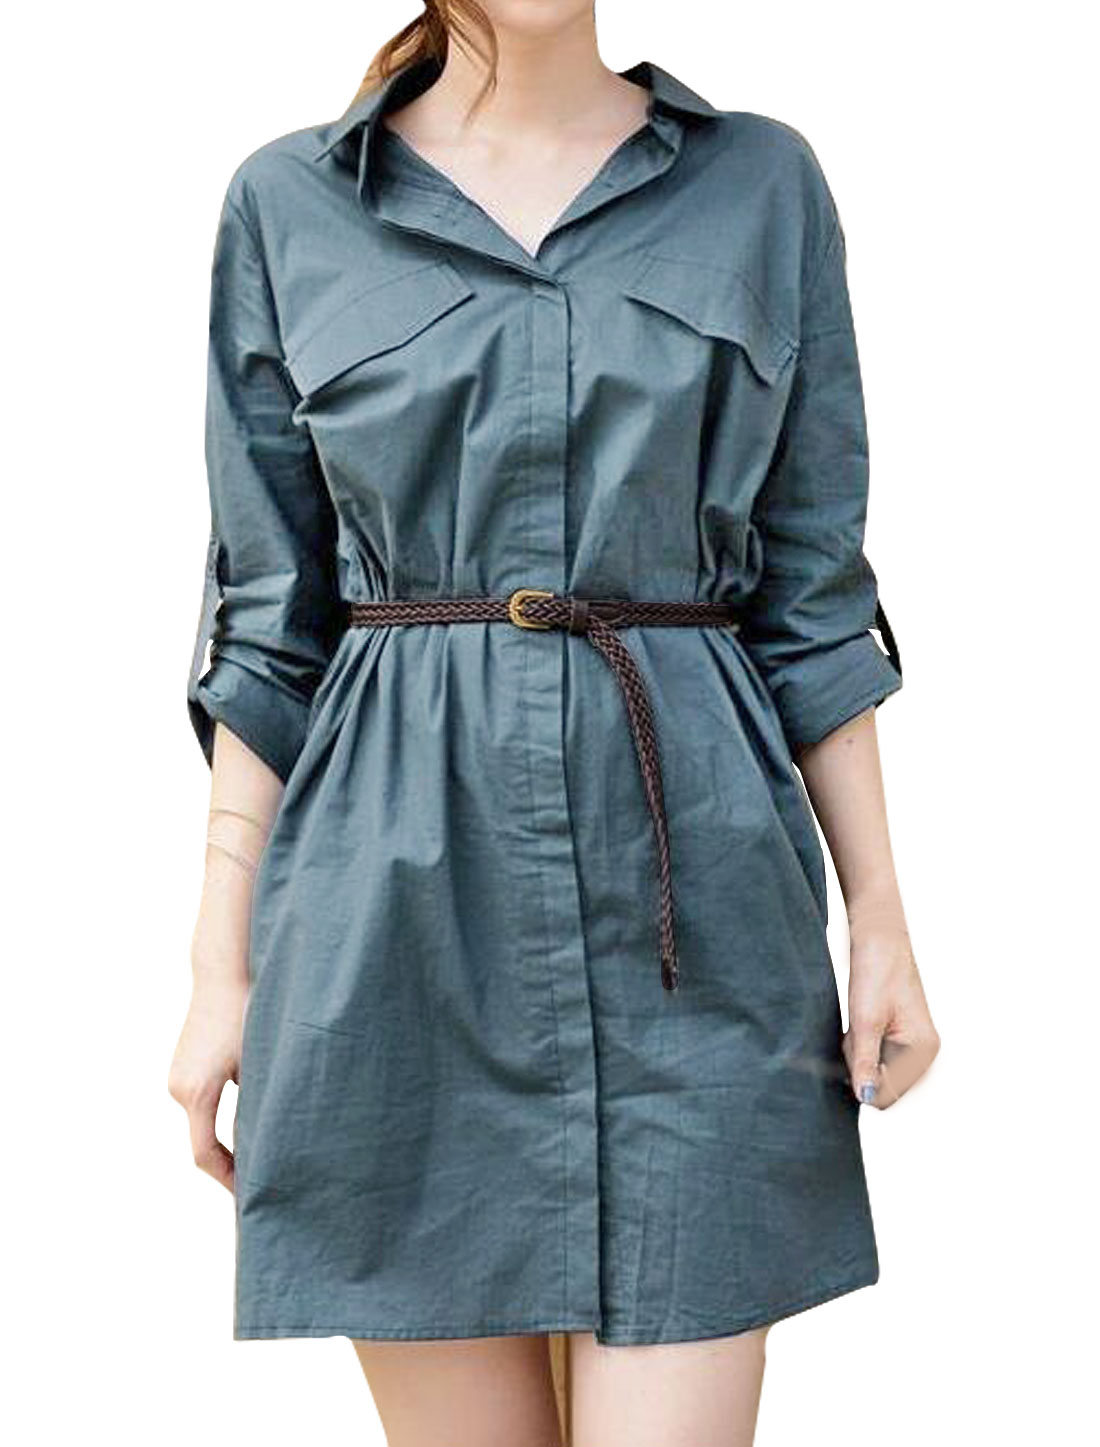 Woman Collared Roll Up Sleeves Shirt Dress w Belt Blue XS